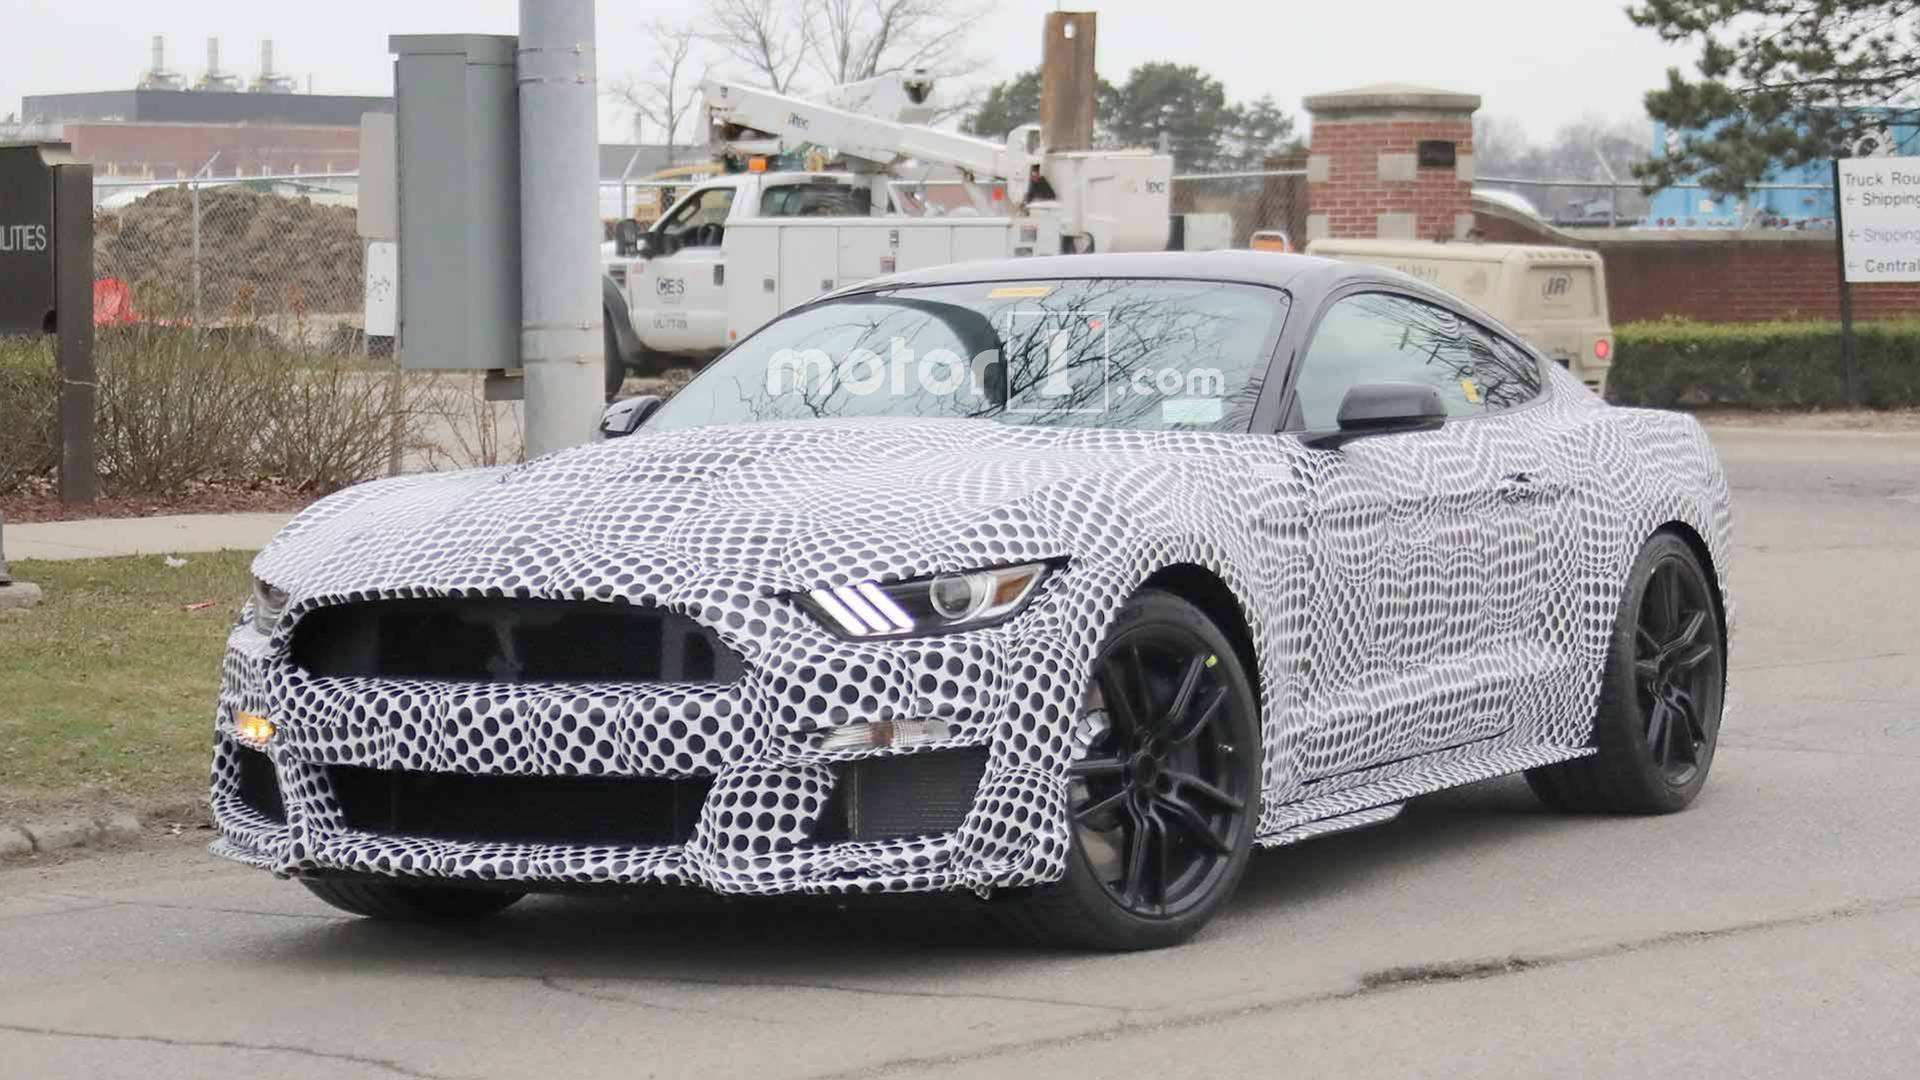 40 Best 2020 The Spy Shots Ford Mustang Svt Gt 500 Images